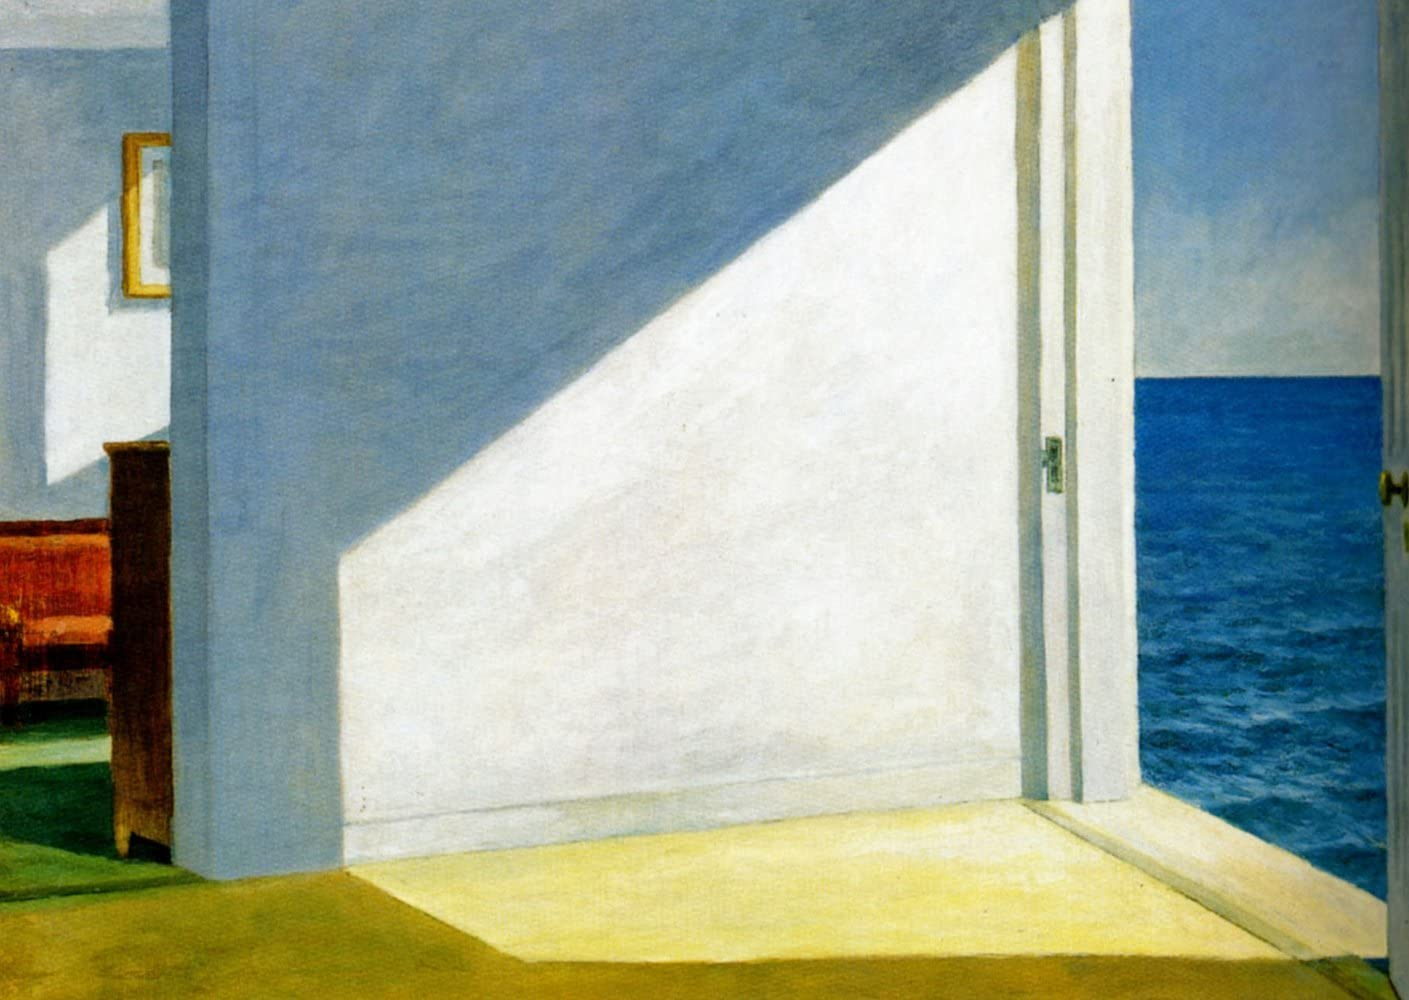 Edward Hopper - Rooms by The Sea, Size 24x36 inch, Poster Art Print Wall décor